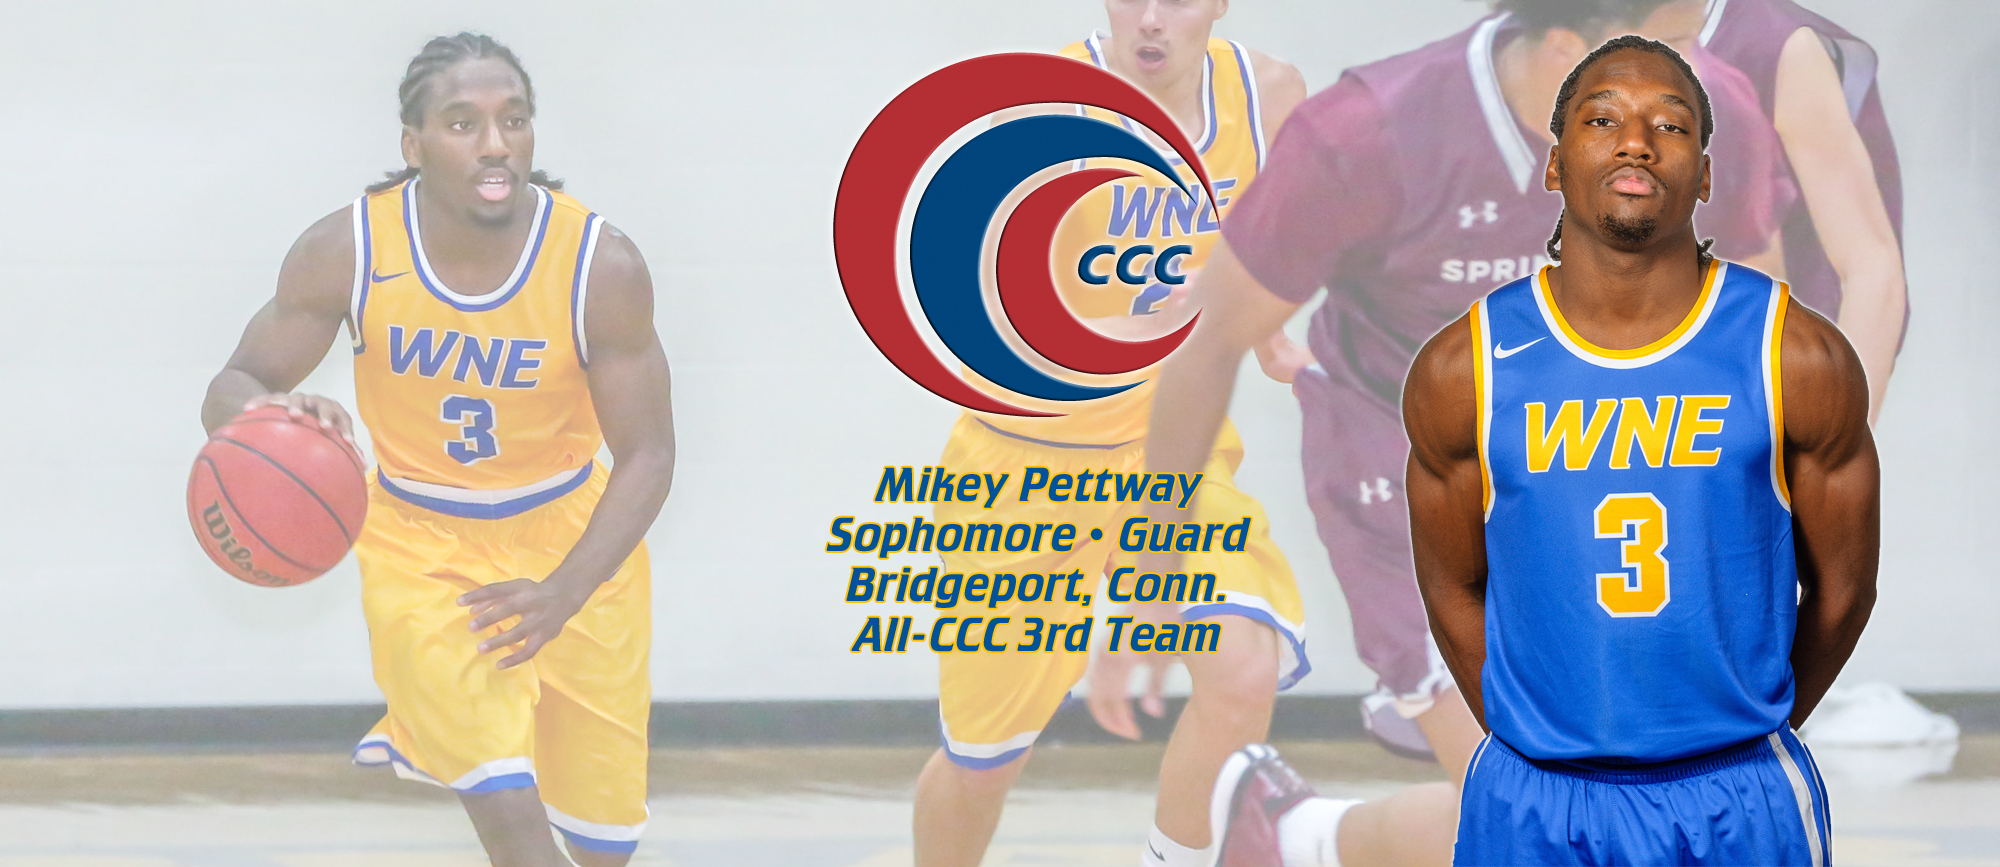 Mikey Pettway Named to All-CCC Third Team